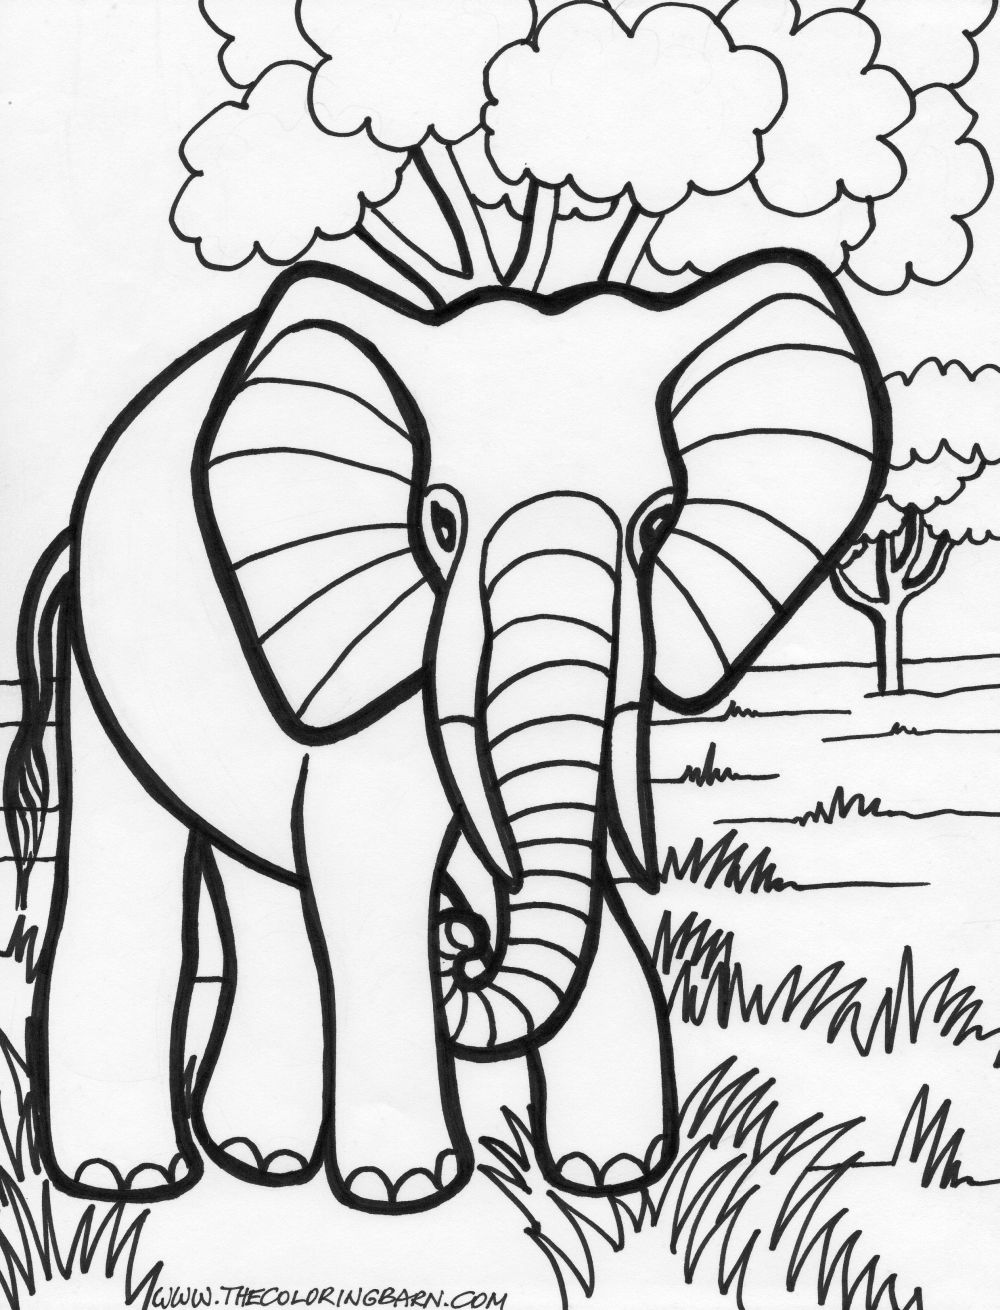 coloring kids pages - photo#11